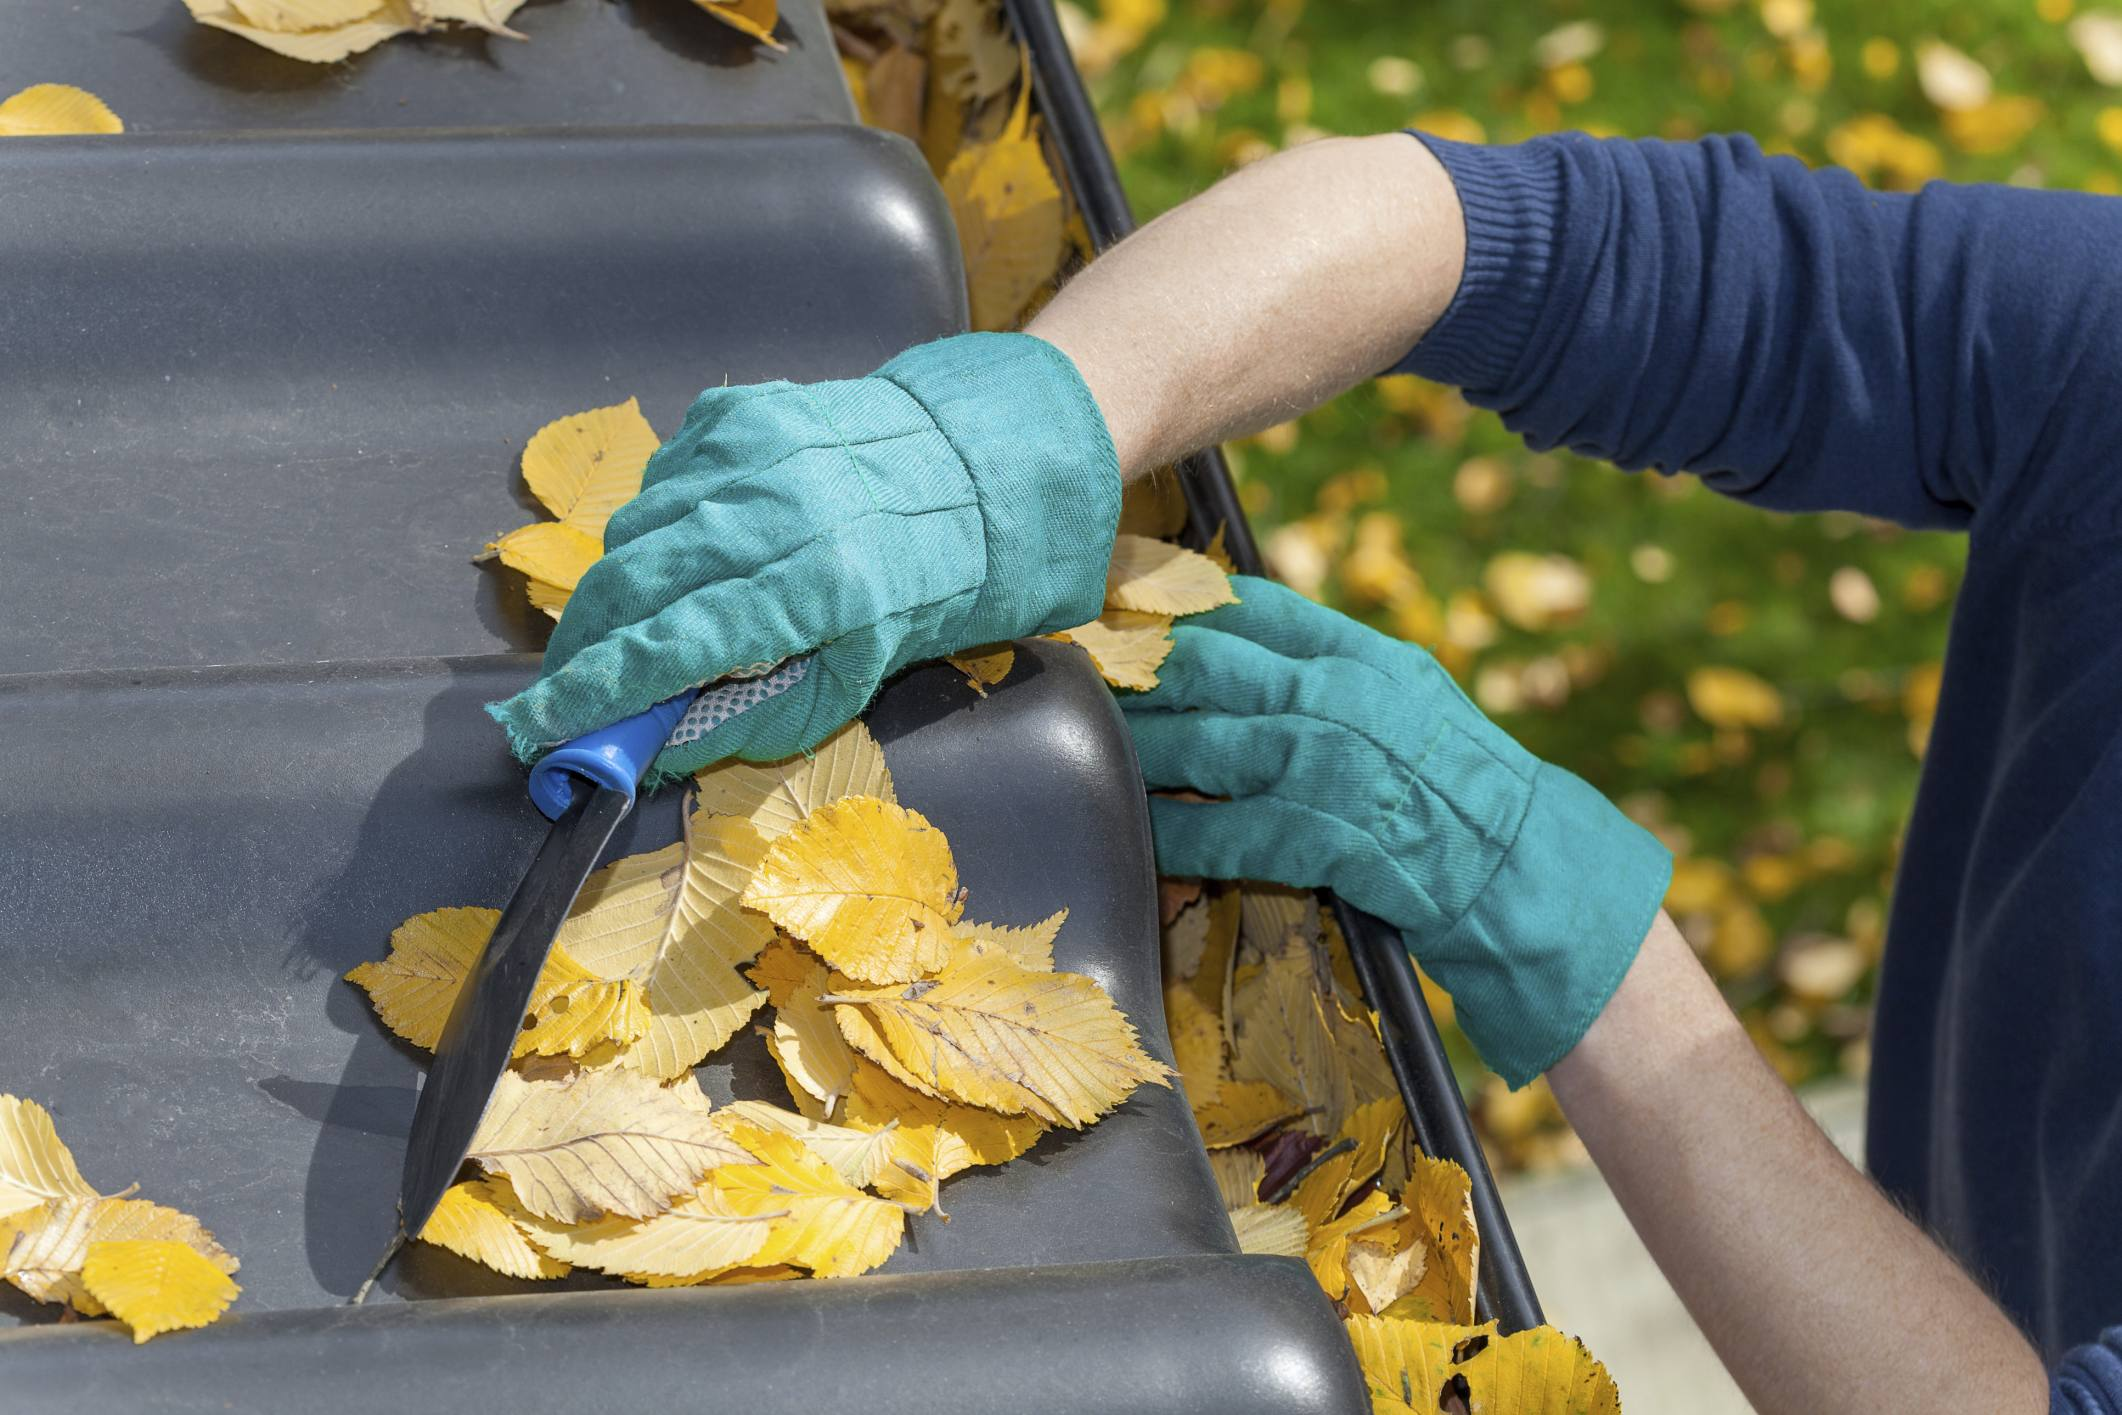 cleaning leaves out of clogged gutters to avoid seepage and flooding